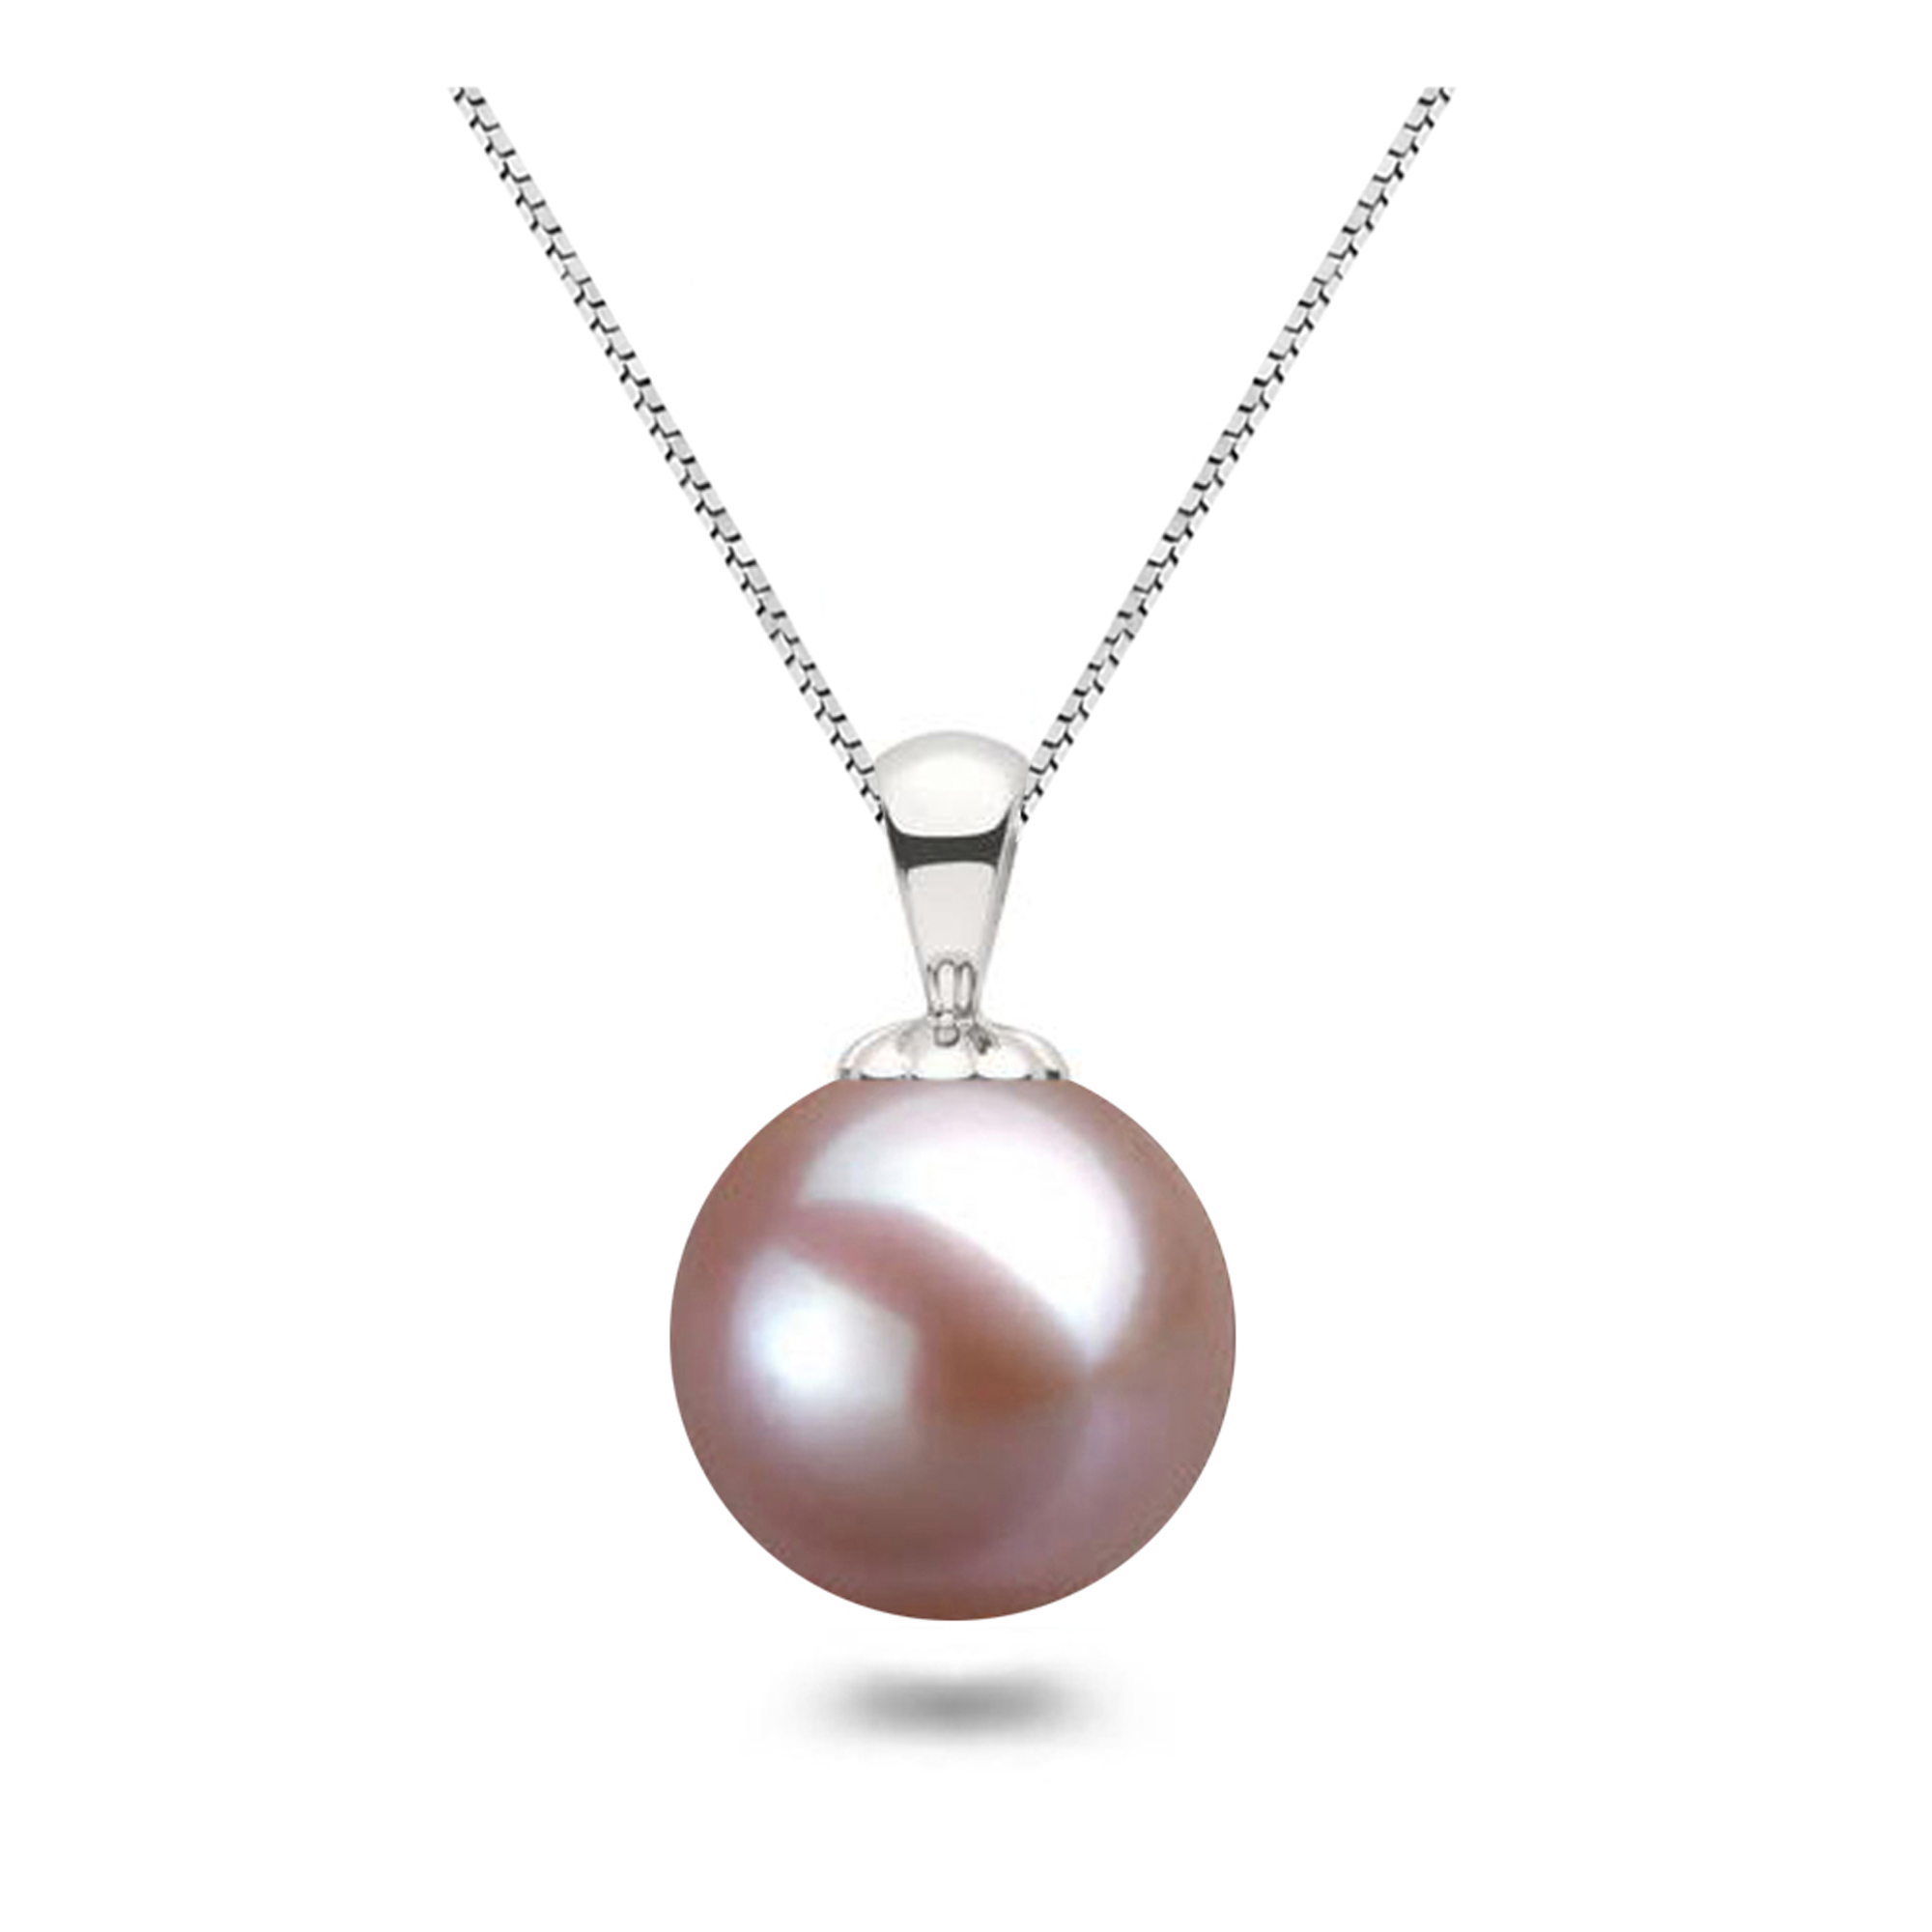 Japanese Lavender Pearl Pendants AAAA Freshwater Pearl Necklace Pendant 14K Gold Setting Pearl Pendant Necklaces for Women Free Shipping